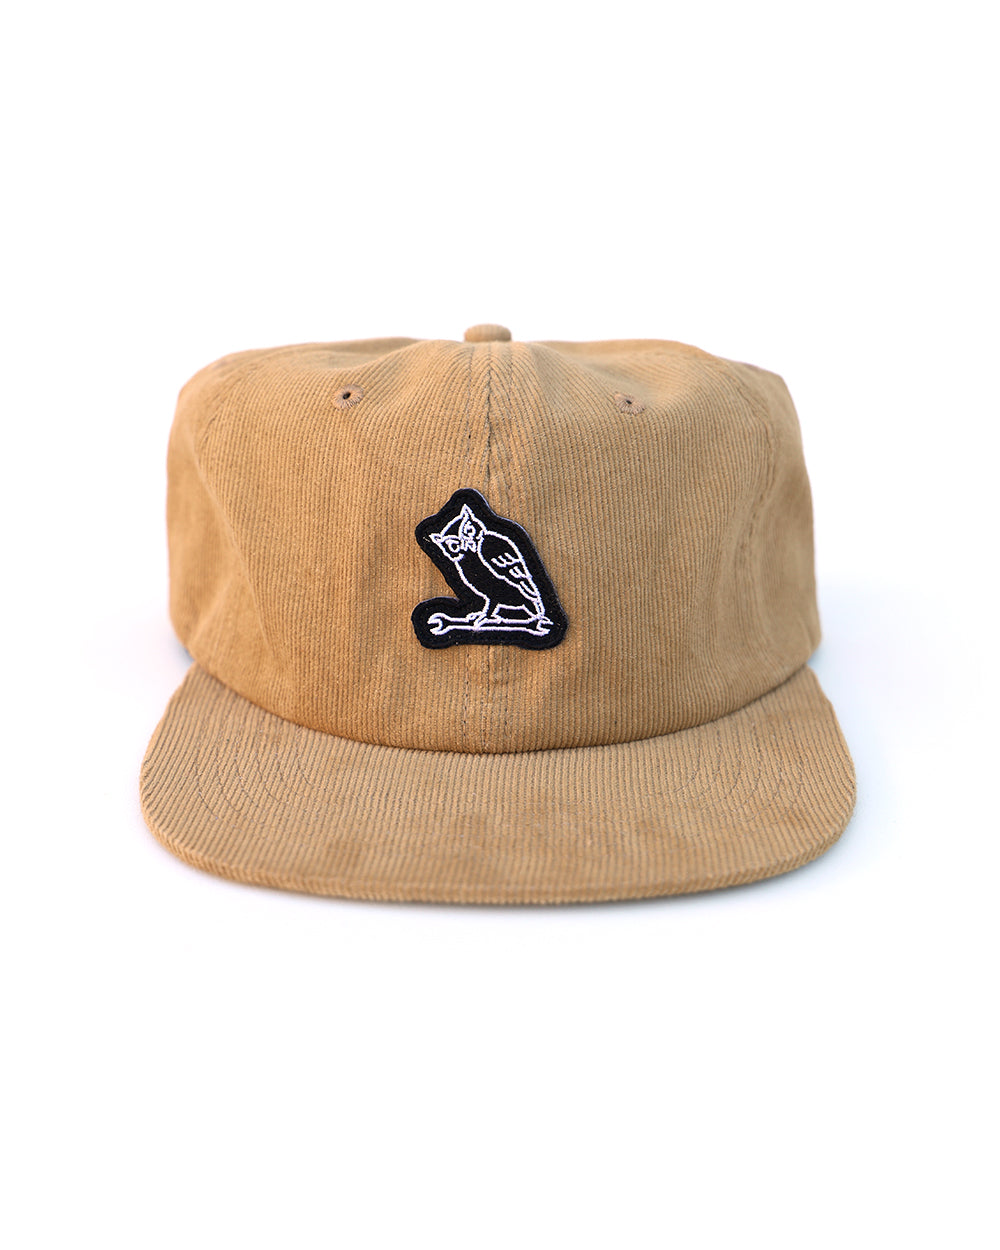 TF NIGHT CREW OWL CORDUROY CAP - TAN - Tankfarm & Co.